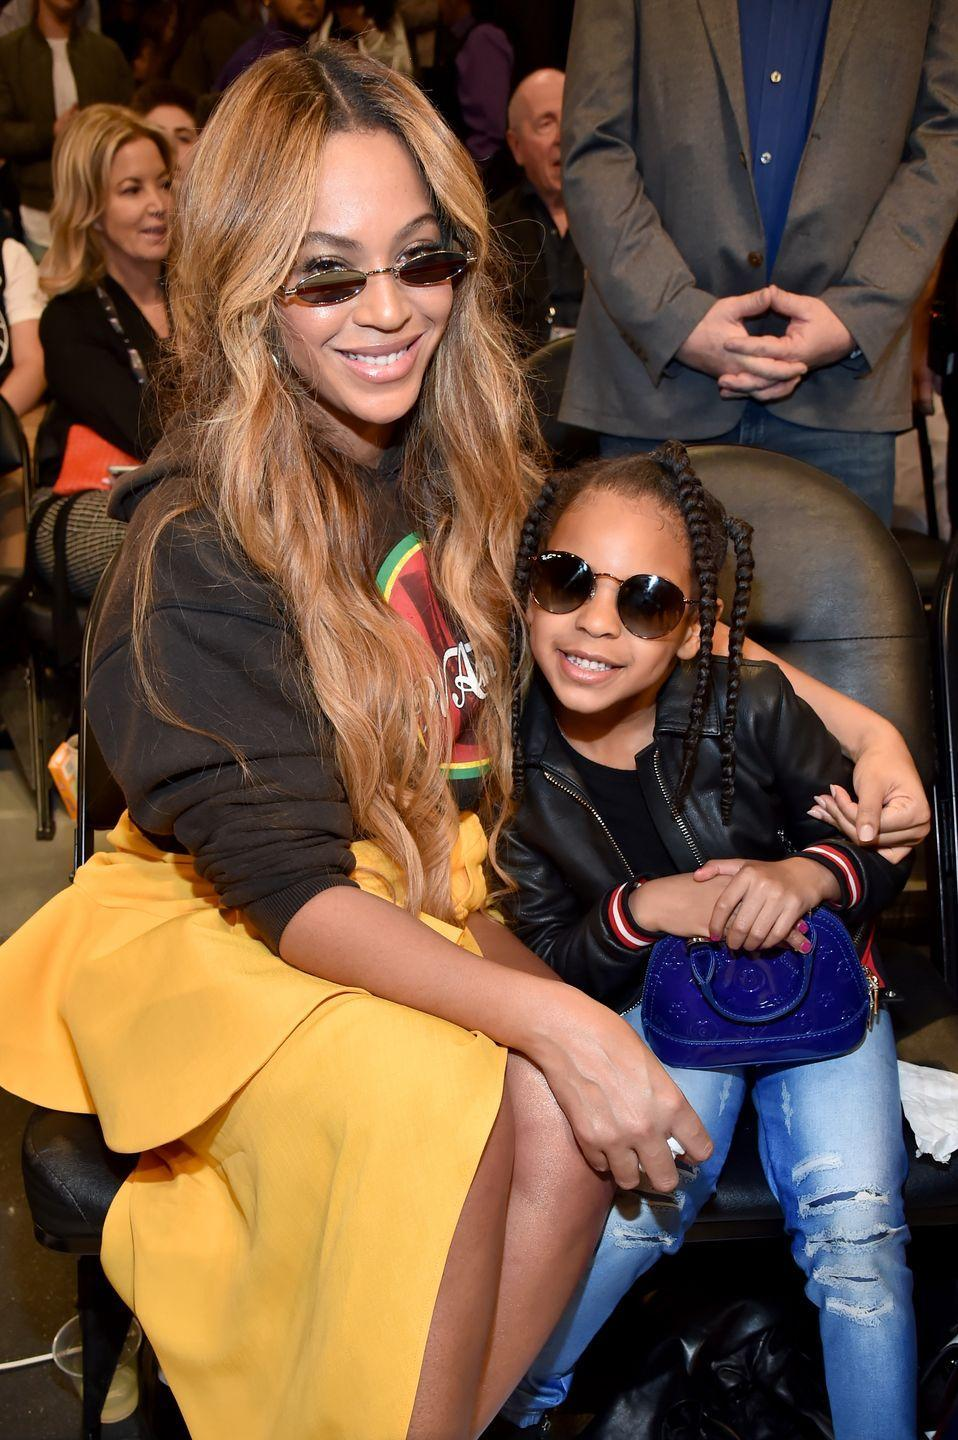 "<p>""My <a href=""https://www.today.com/series/family-entertainment/beyonc-jay-z-parenting-their-14-best-quotes-t107726"" rel=""nofollow noopener"" target=""_blank"" data-ylk=""slk:daughter"" class=""link rapid-noclick-resp"">daughter</a> introduced me to myself ... My mother and I are so close, and I always prayed that I would have that type of relationship with my daughter. And she's still a baby, but the connection I had with her when I was giving birth was something that I've never felt before."" </p>"